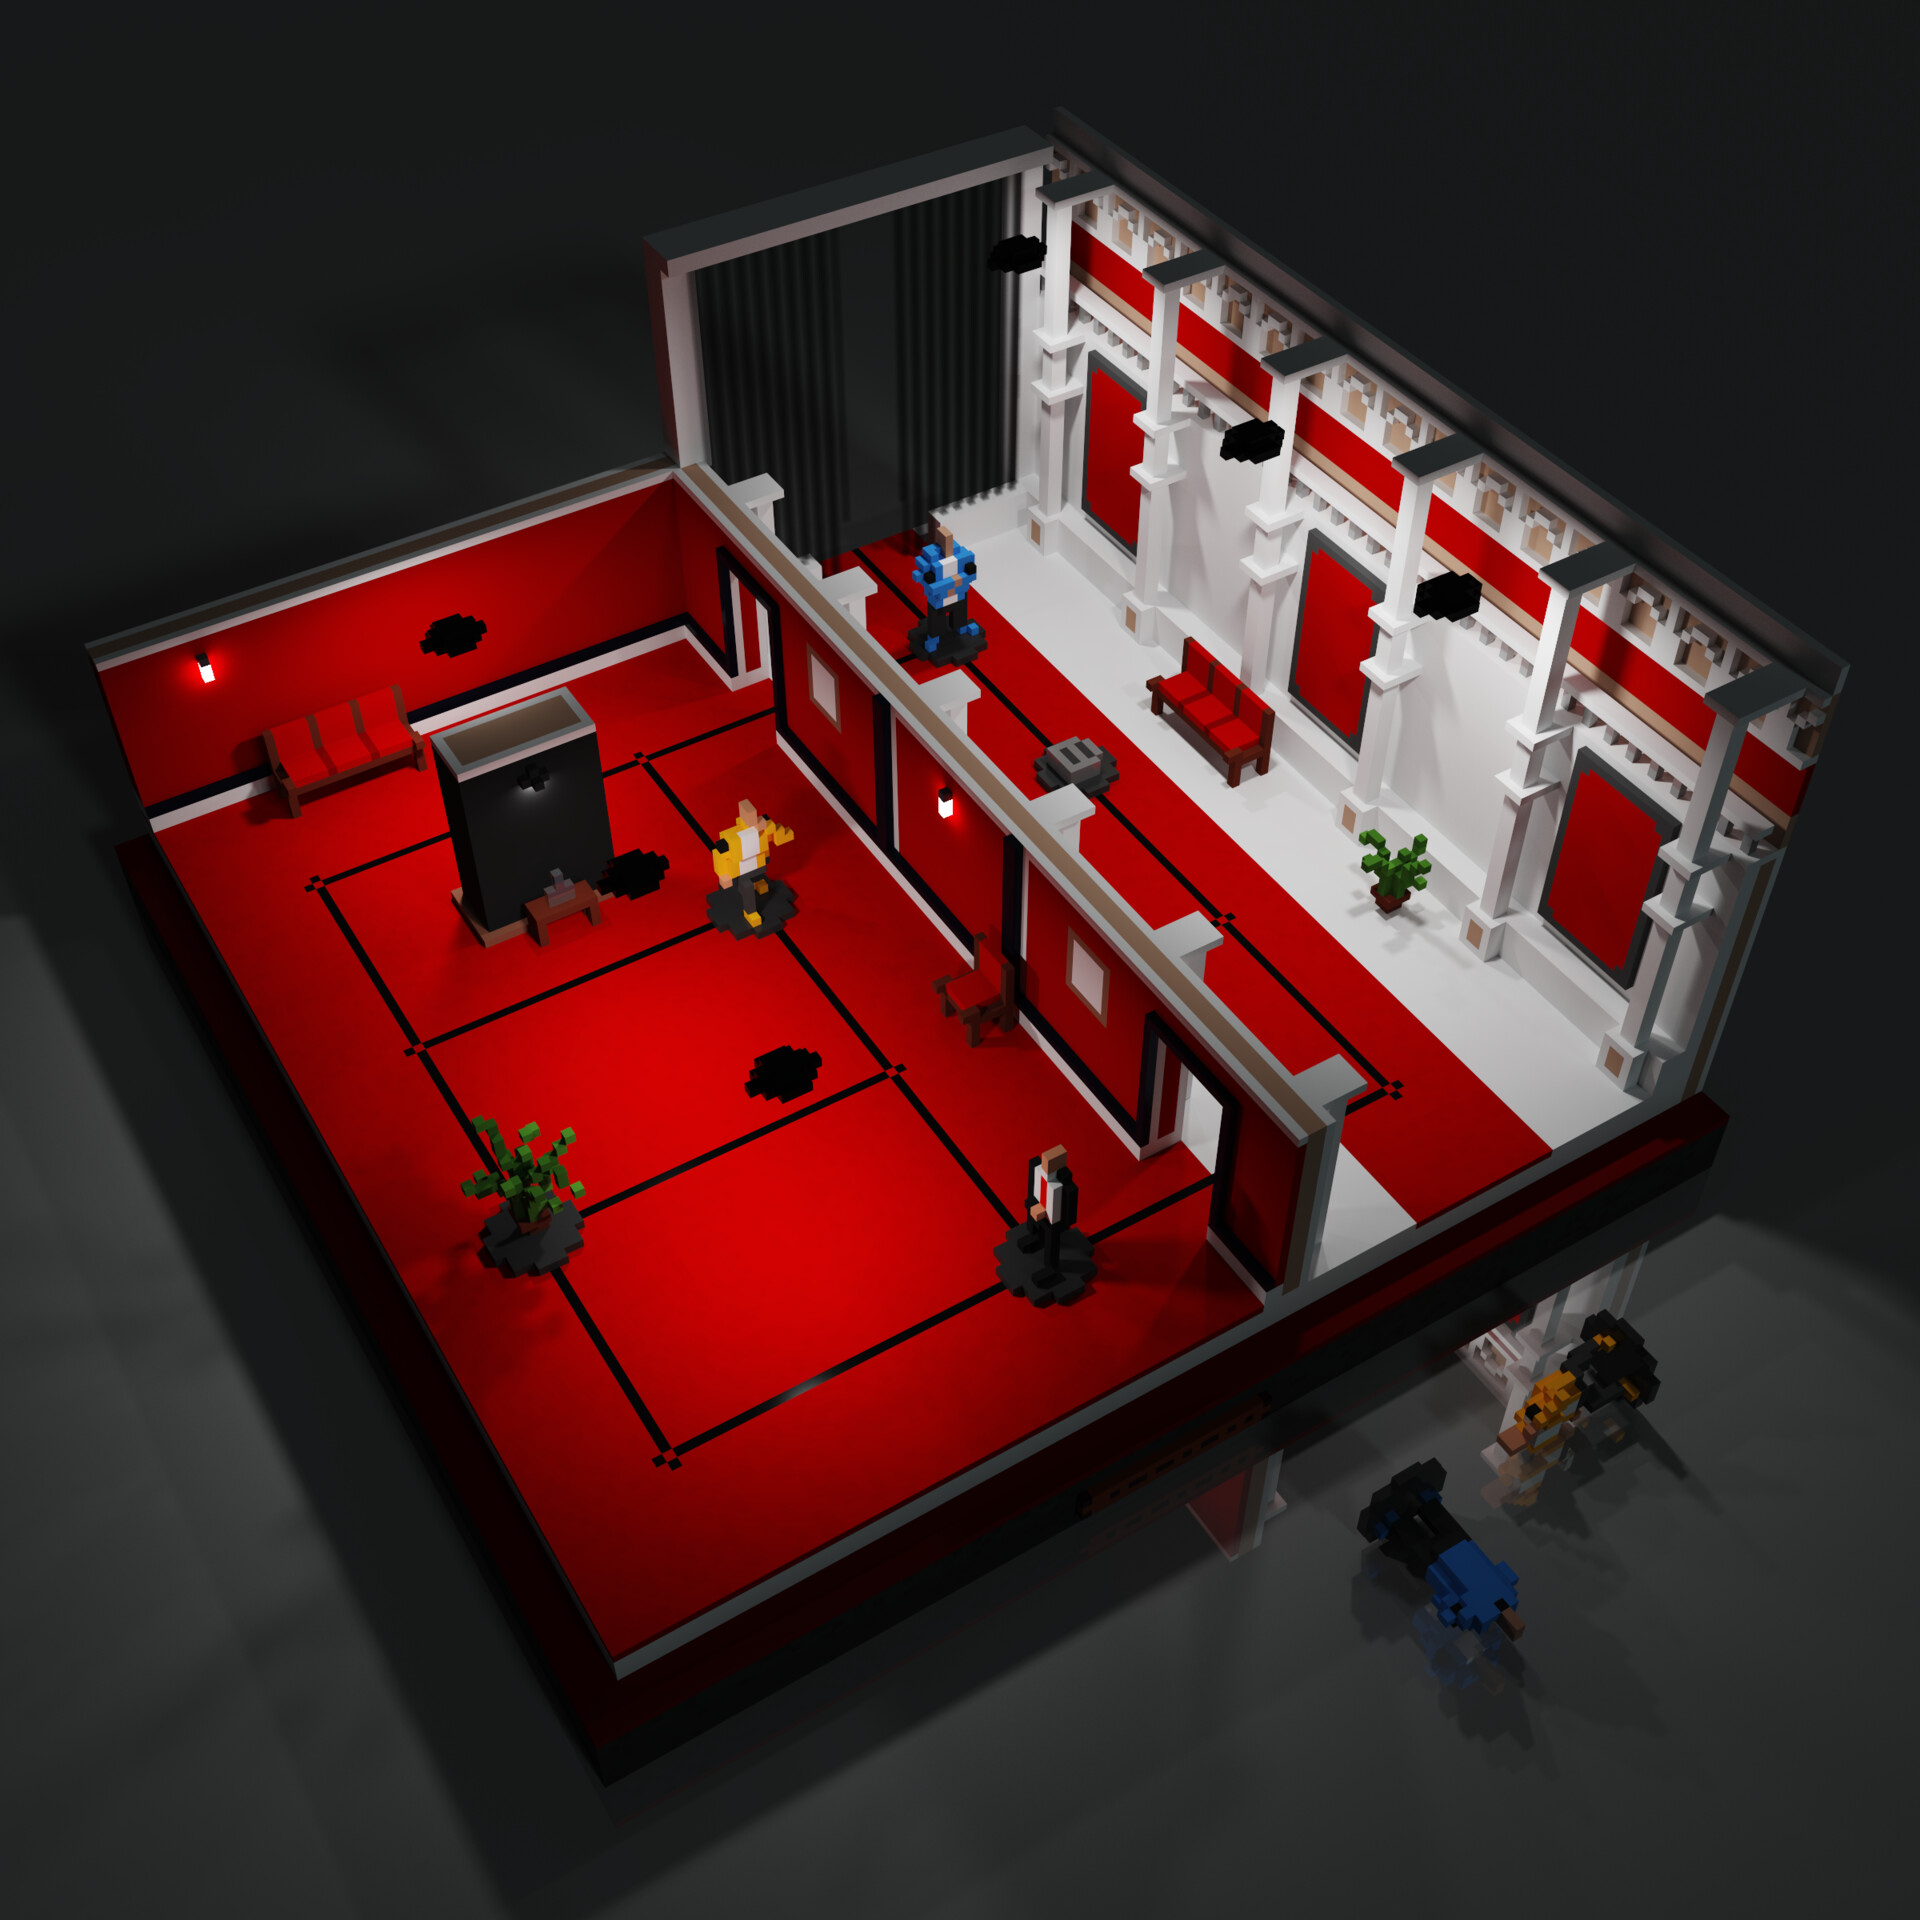 Curtains down MagicaVoxel render - May 2020